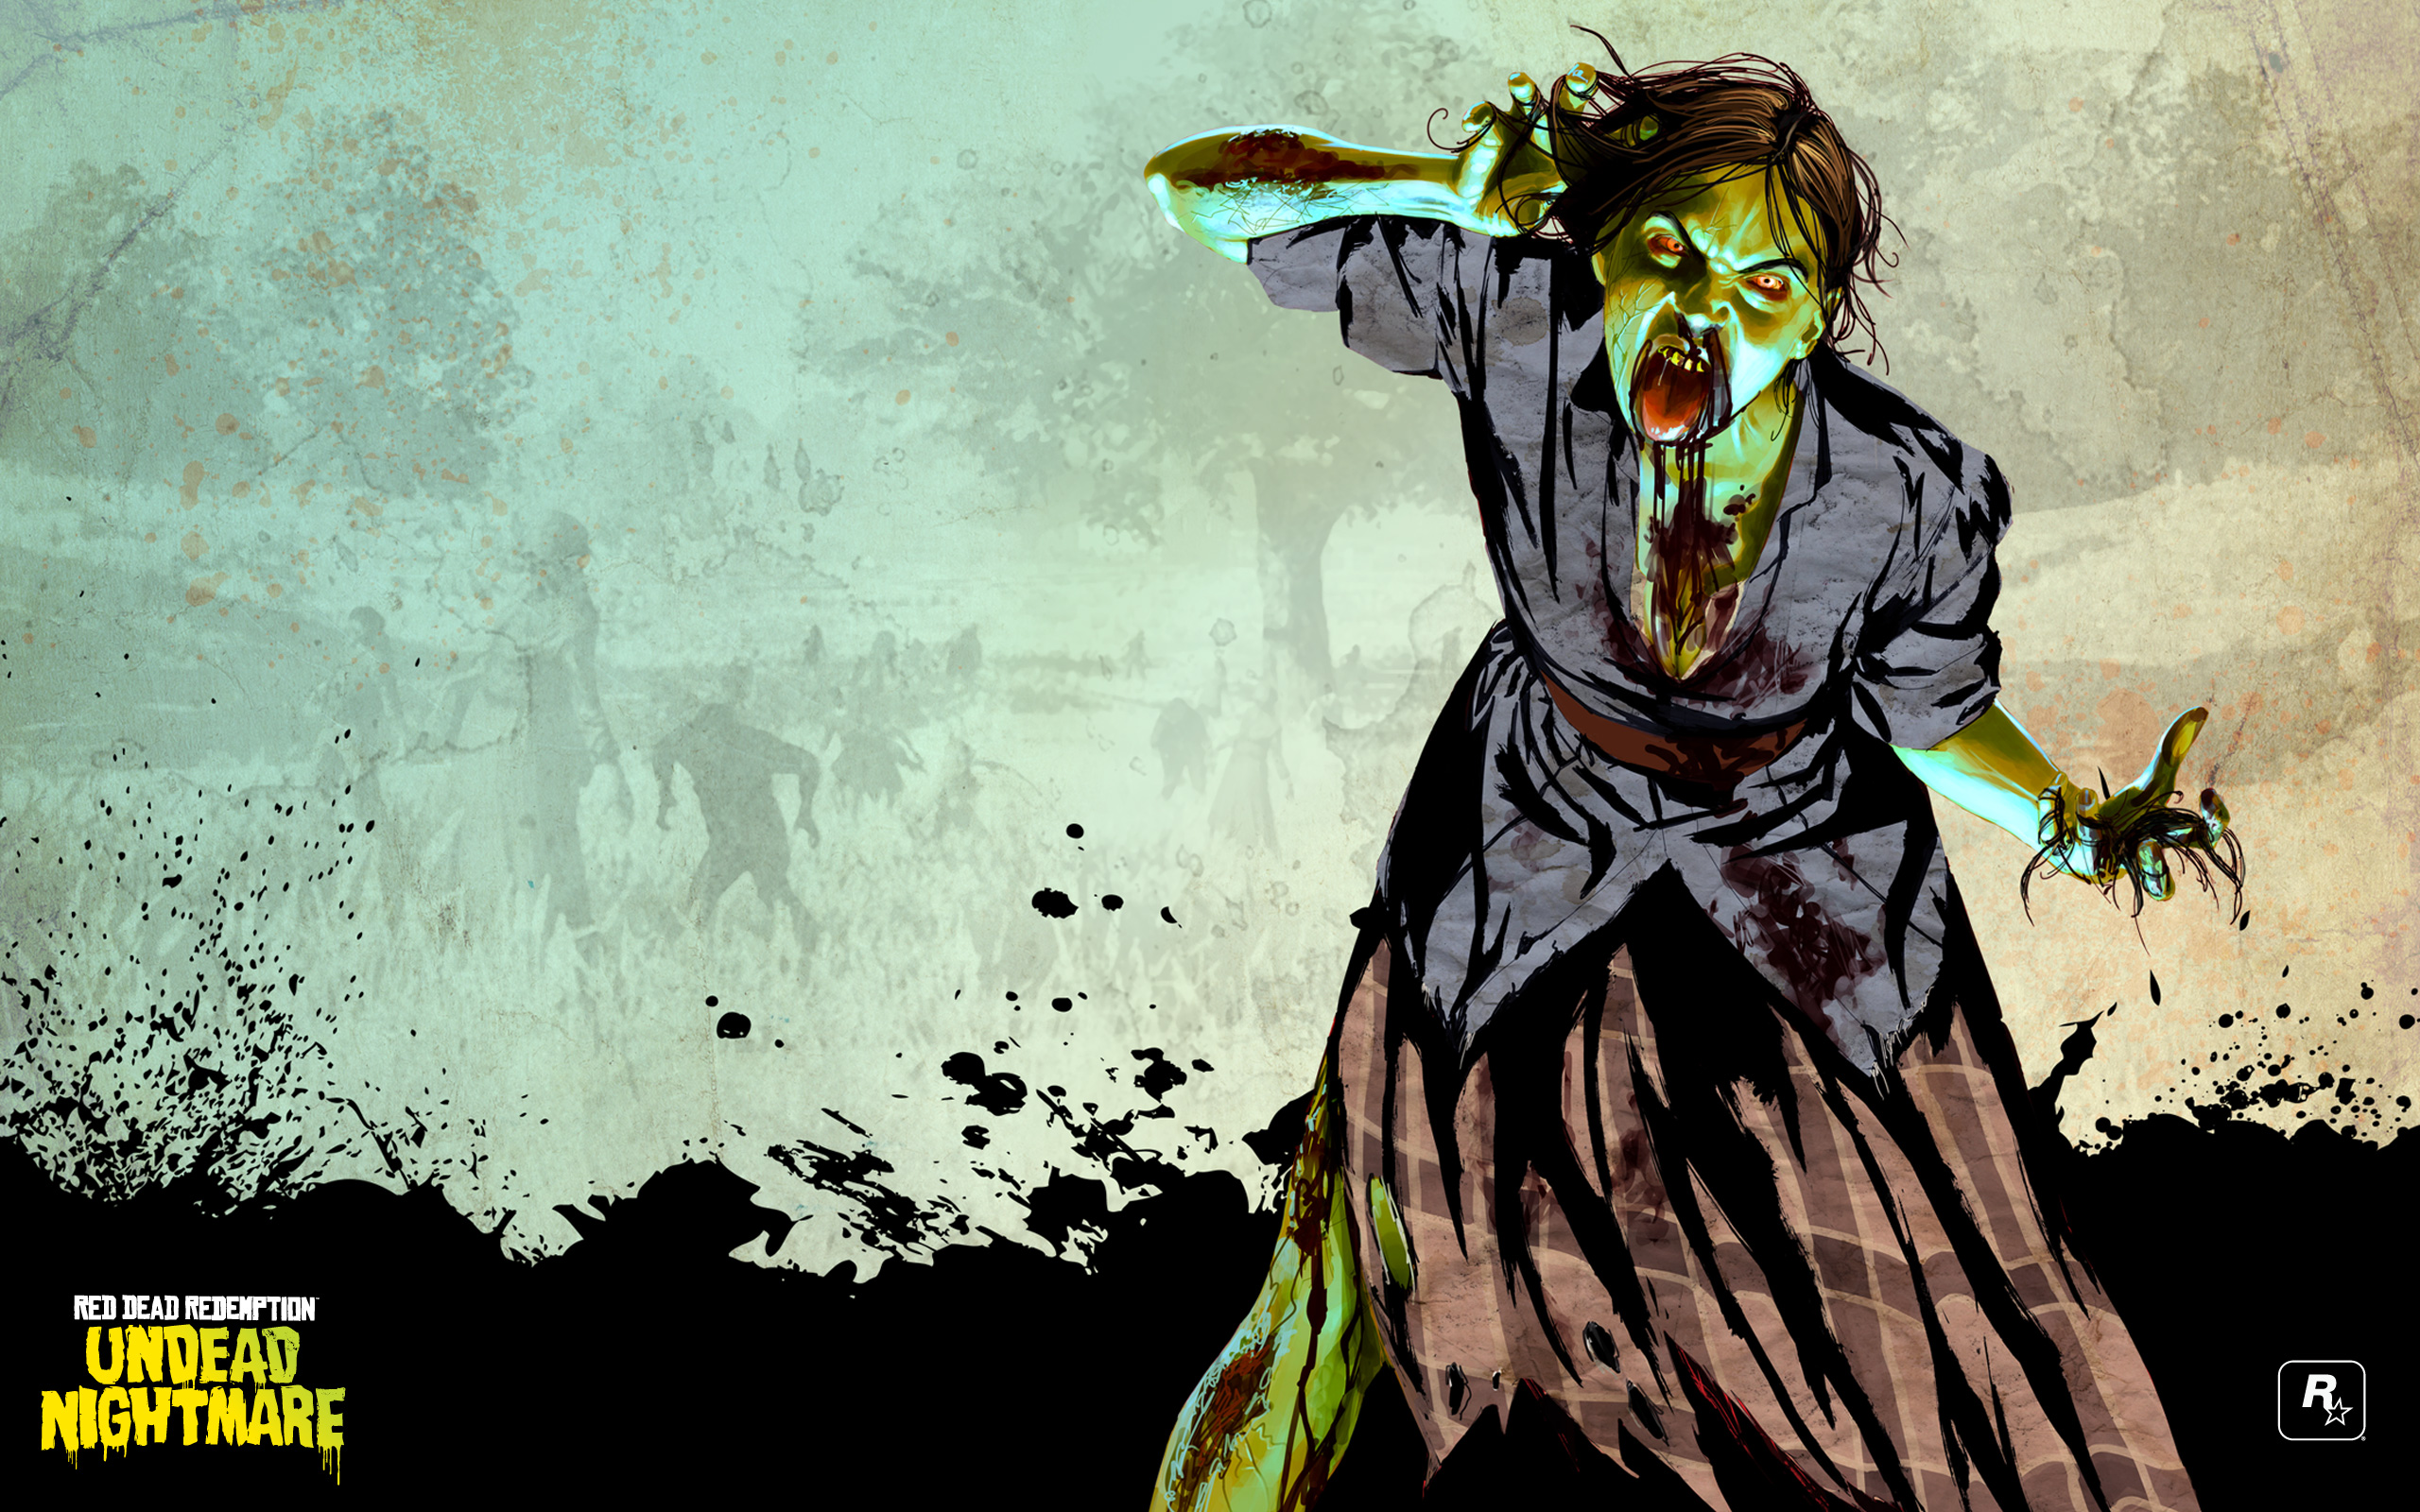 Red Dead Redemption Undead Nightmare 2010 Promotional Art